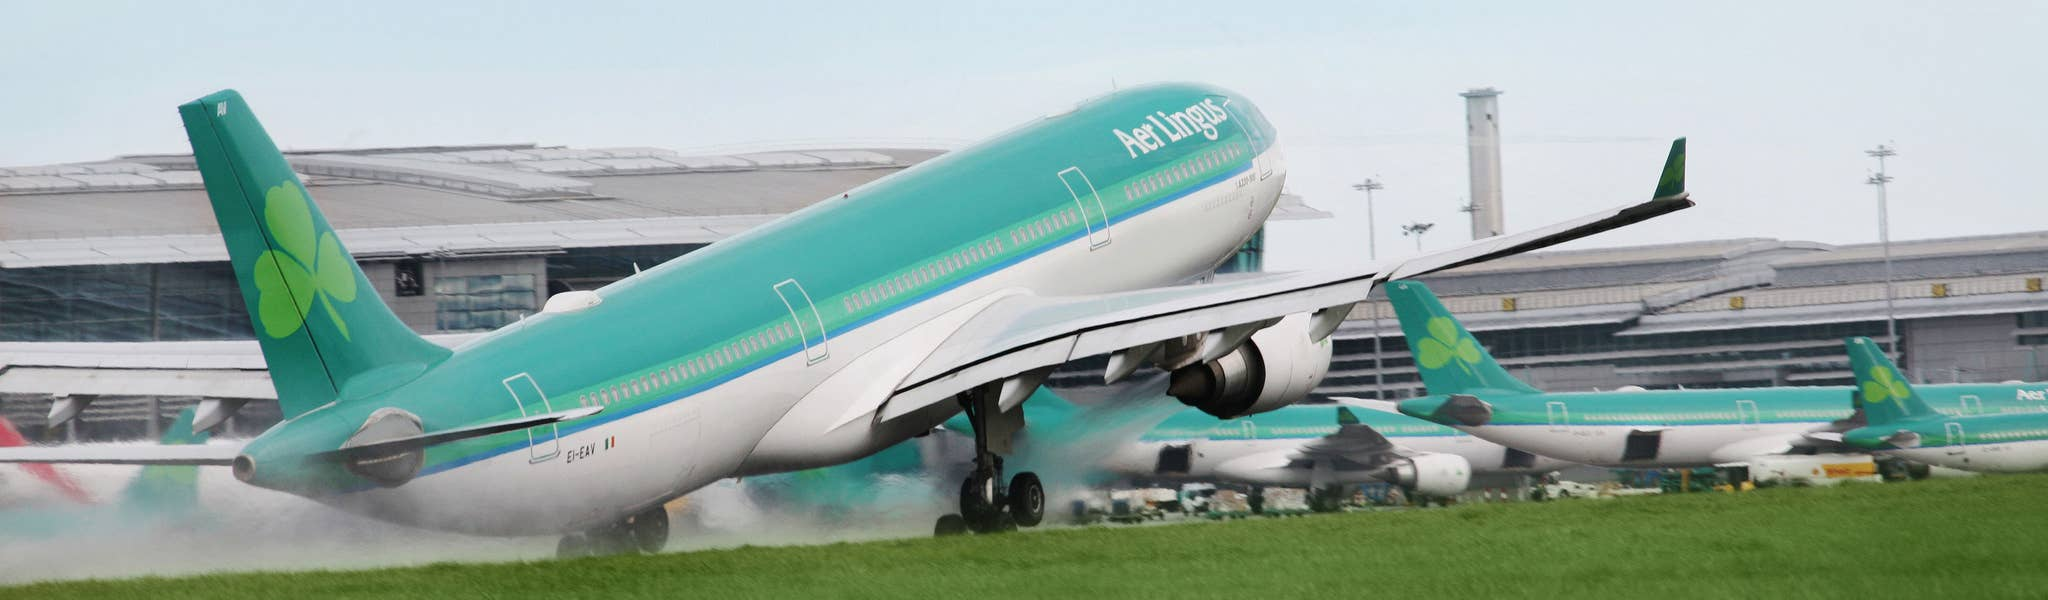 the largest aircraft in the aer lingus fleet